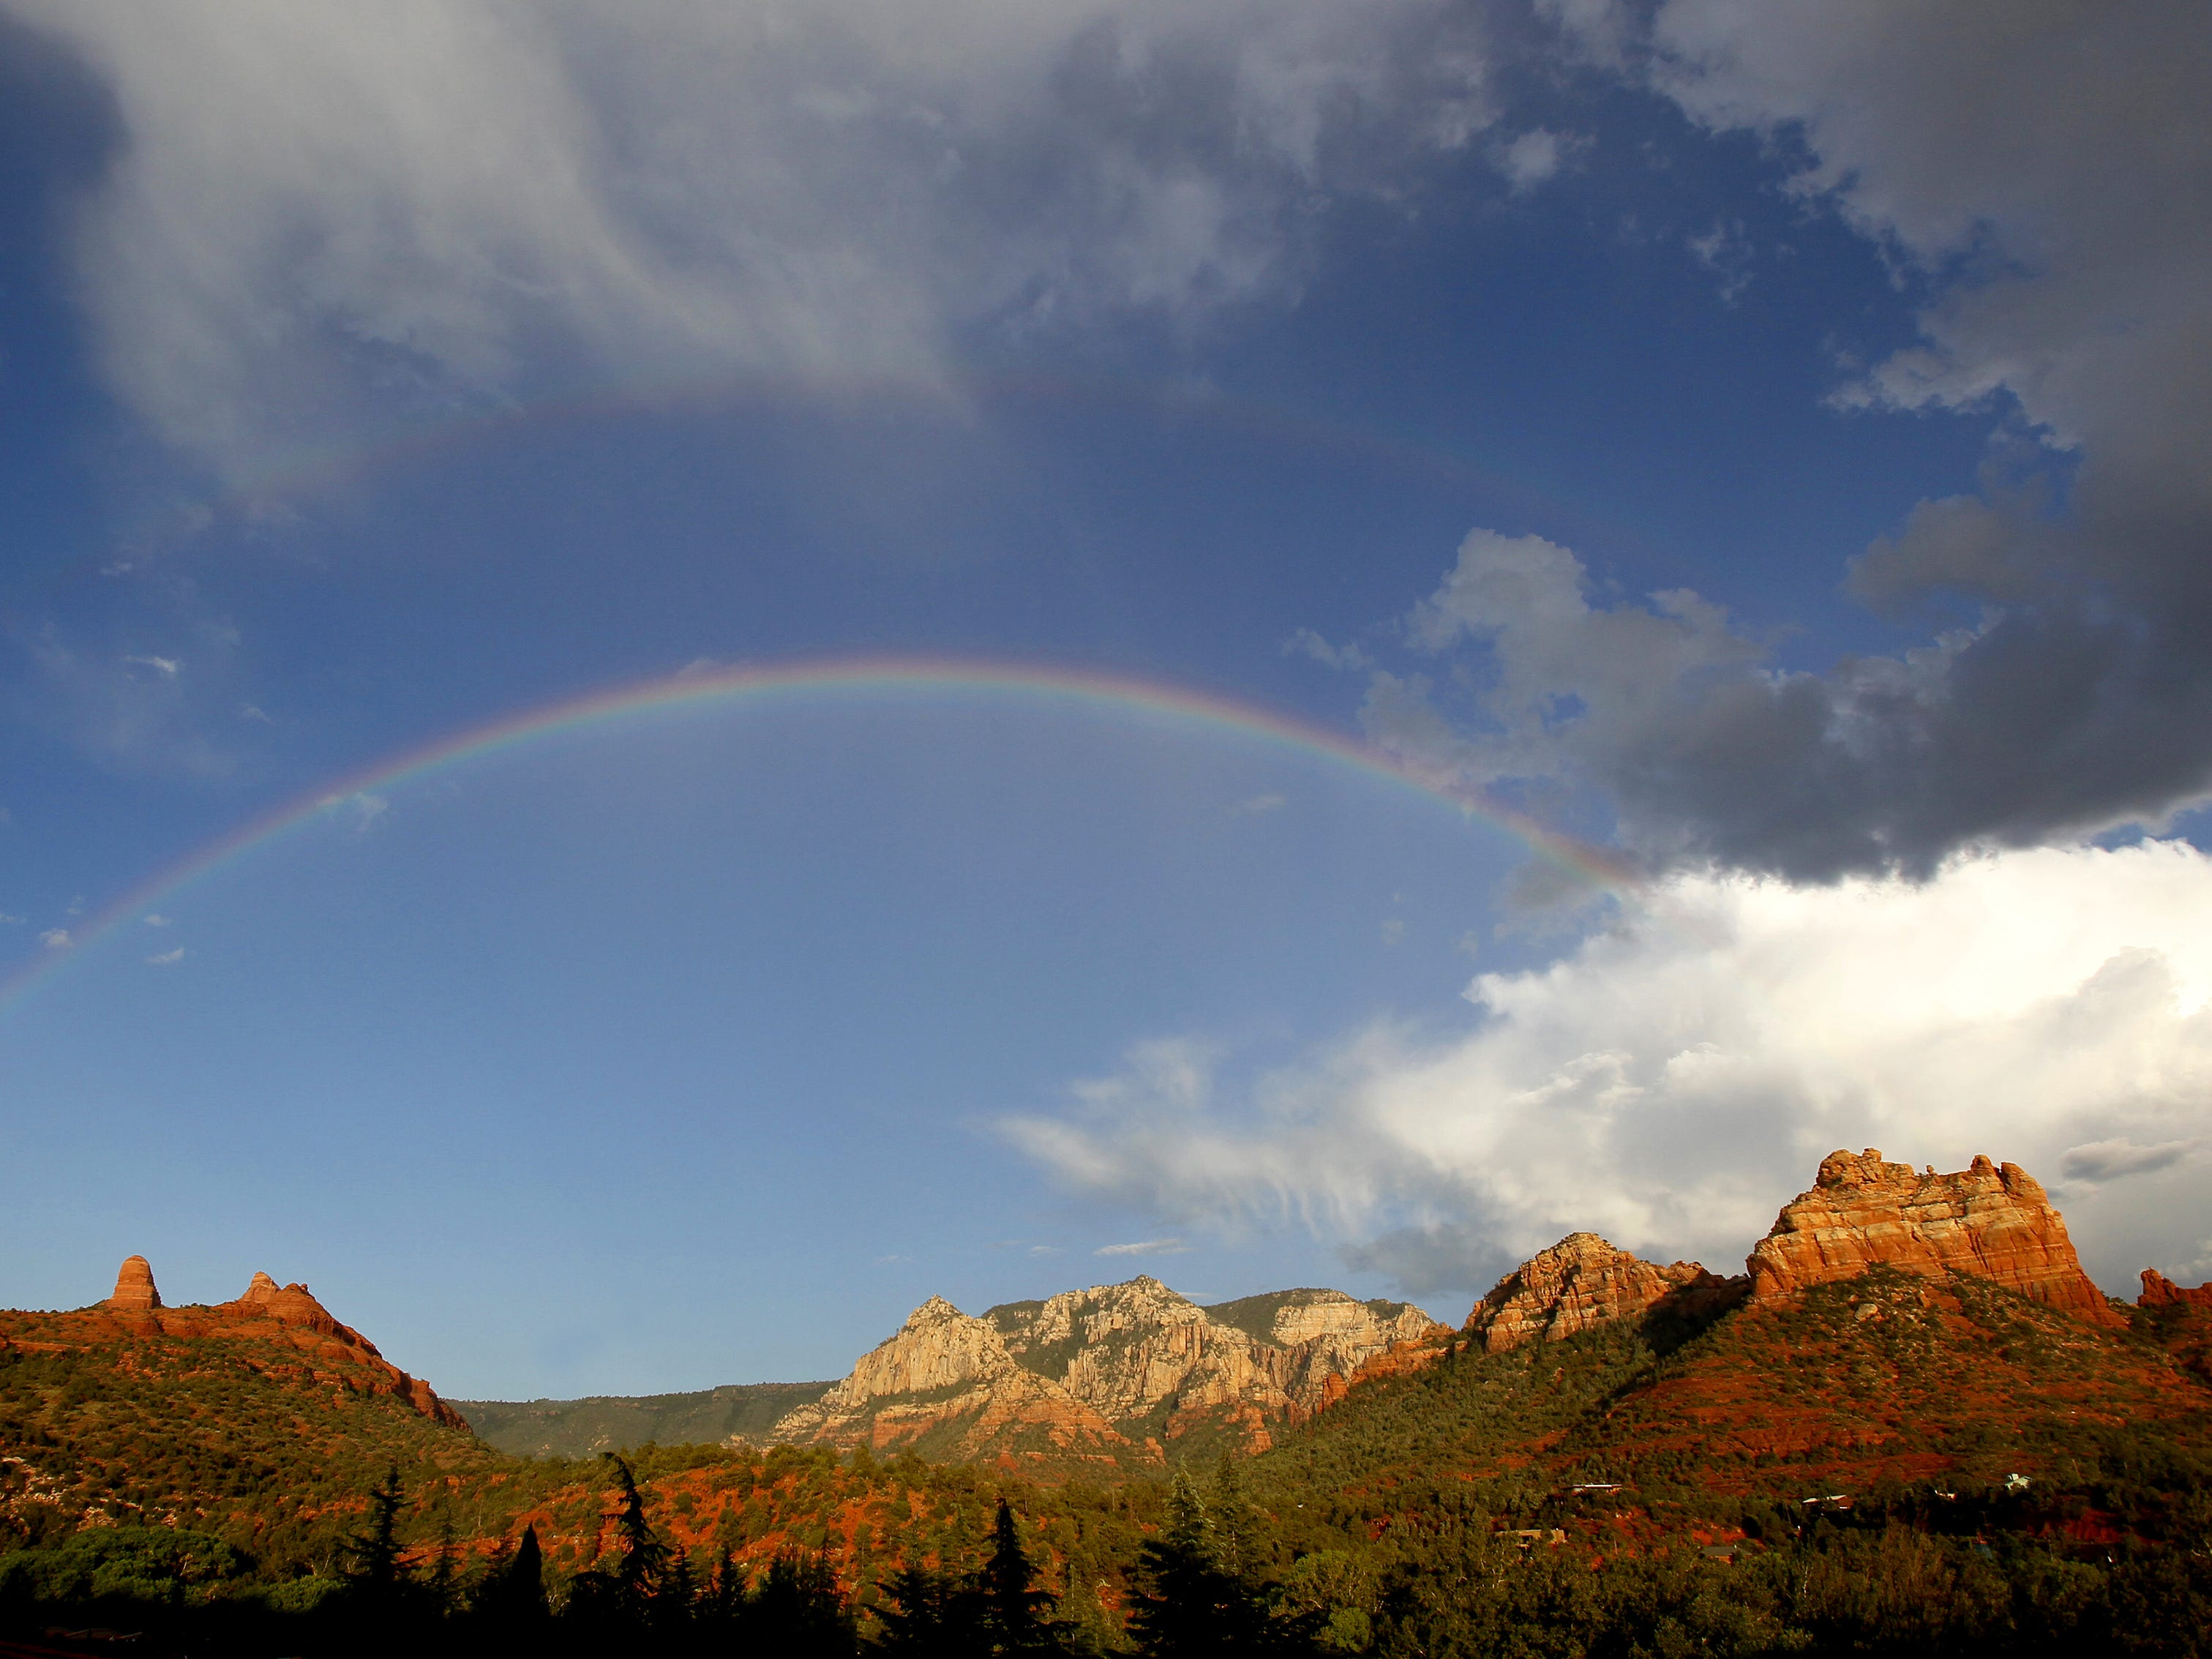 A rainbow arching over the red rocks in Sedona after summer storm.